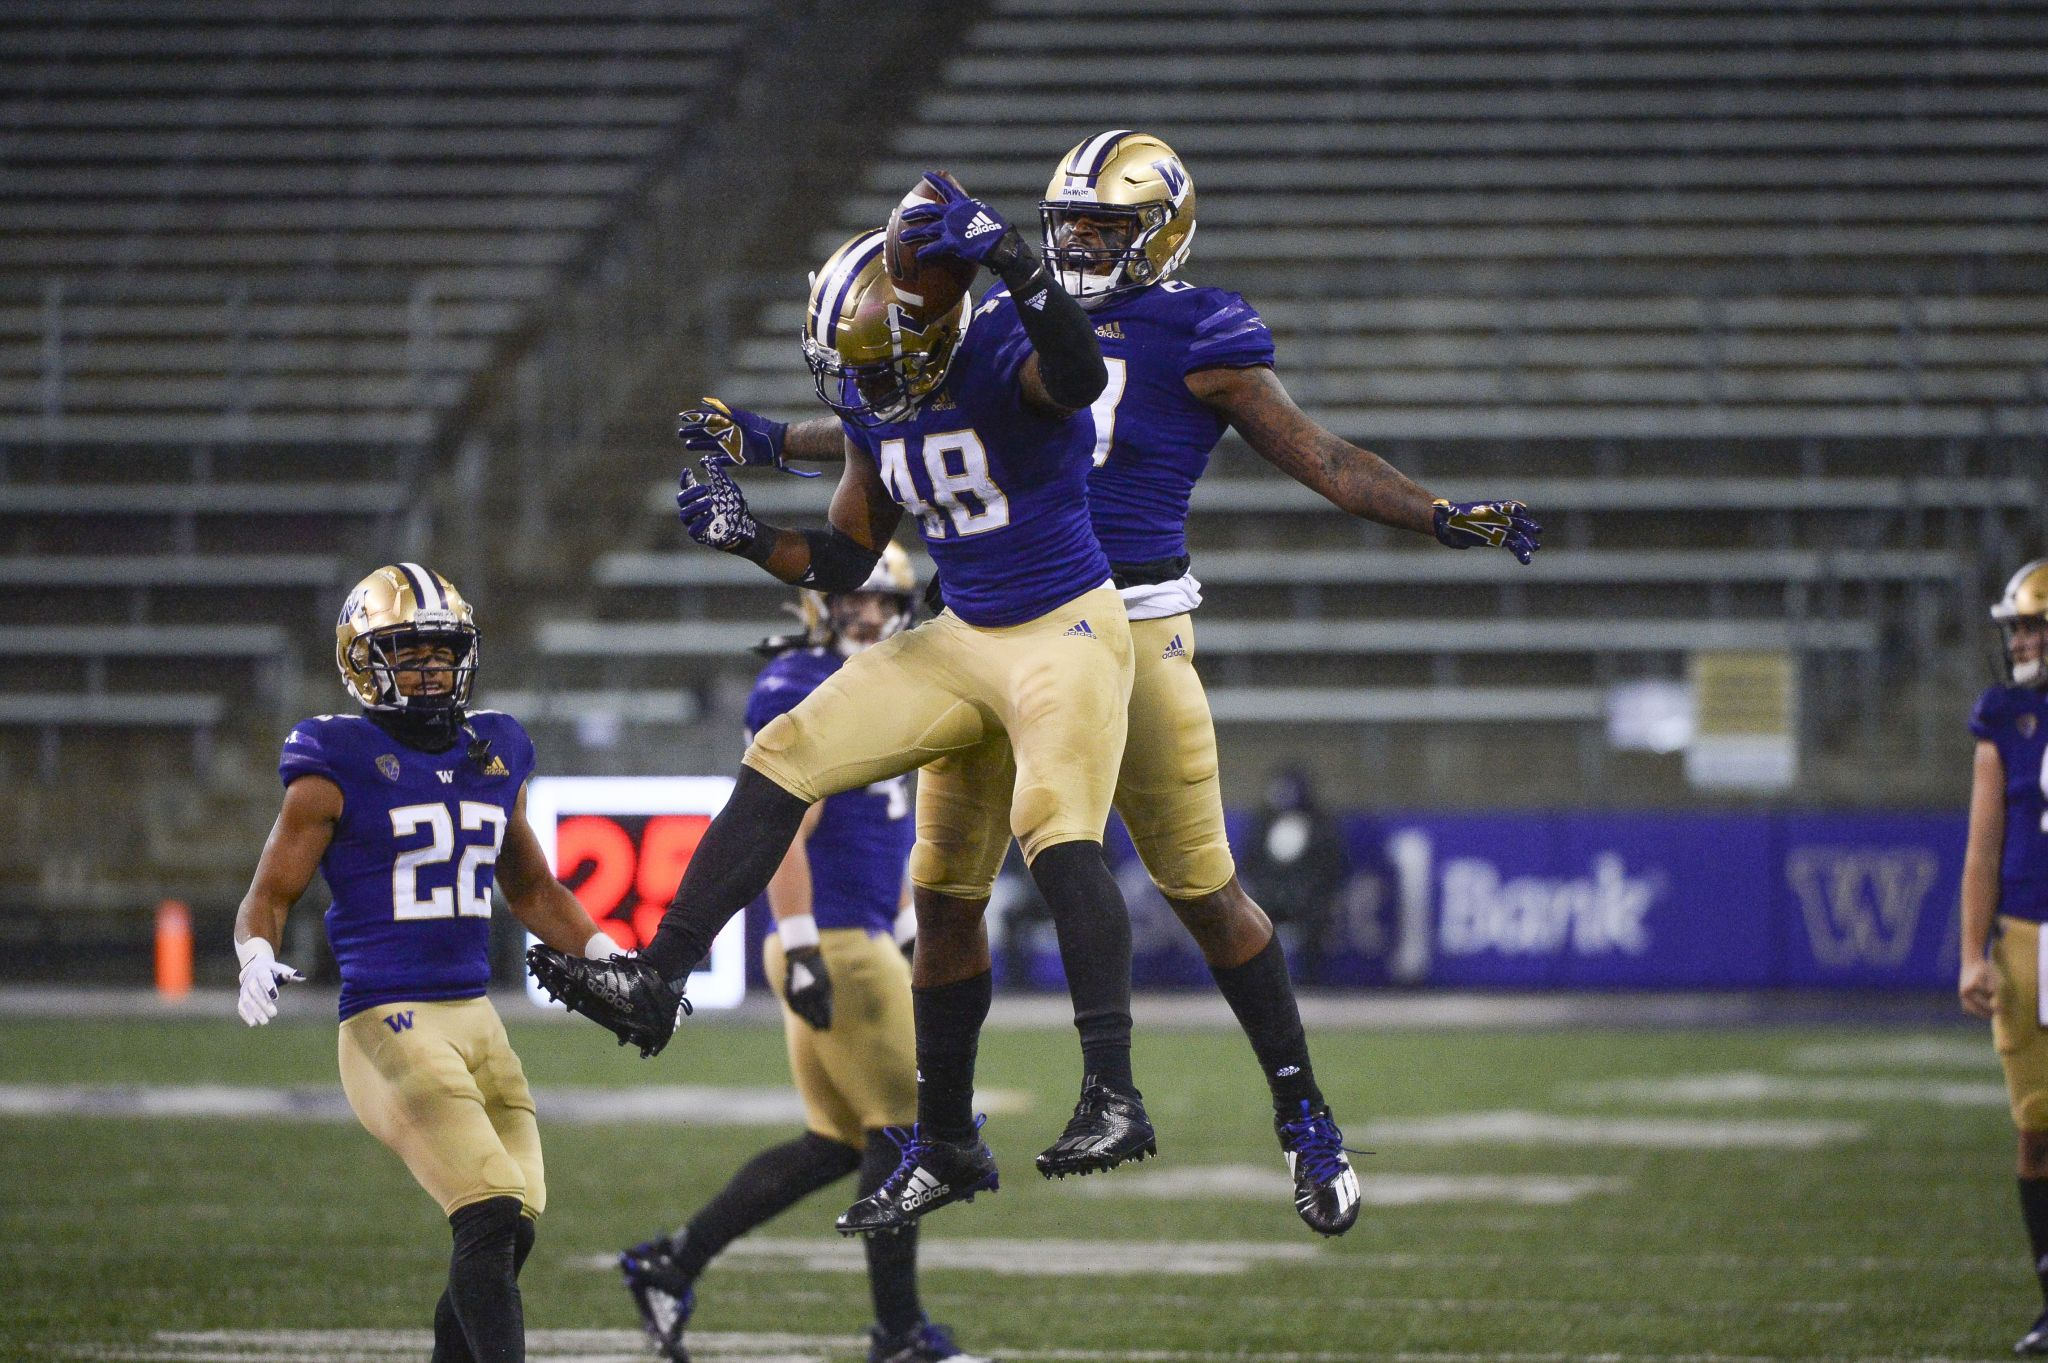 With Apple Cup called off, University of Washington football team shifts sights to Utah